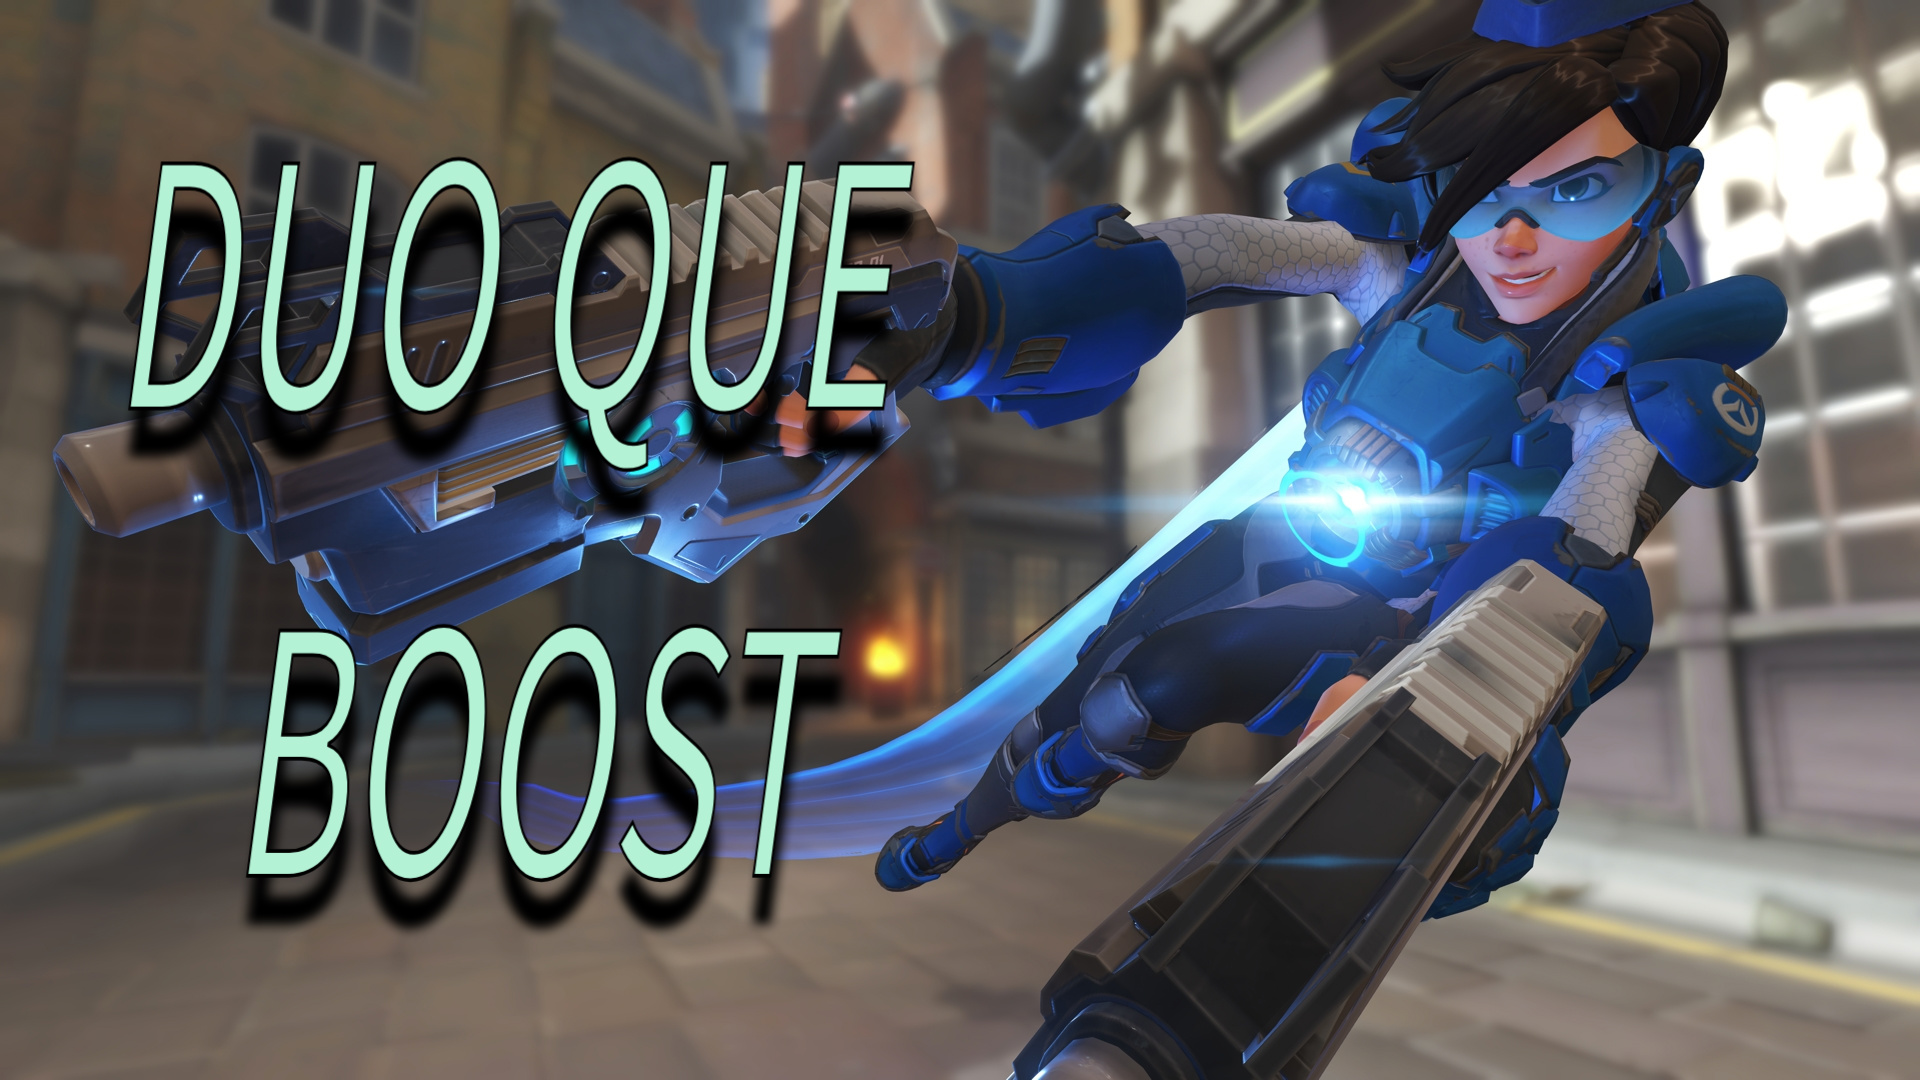 DUO QUE BOOST 3000 - 3499